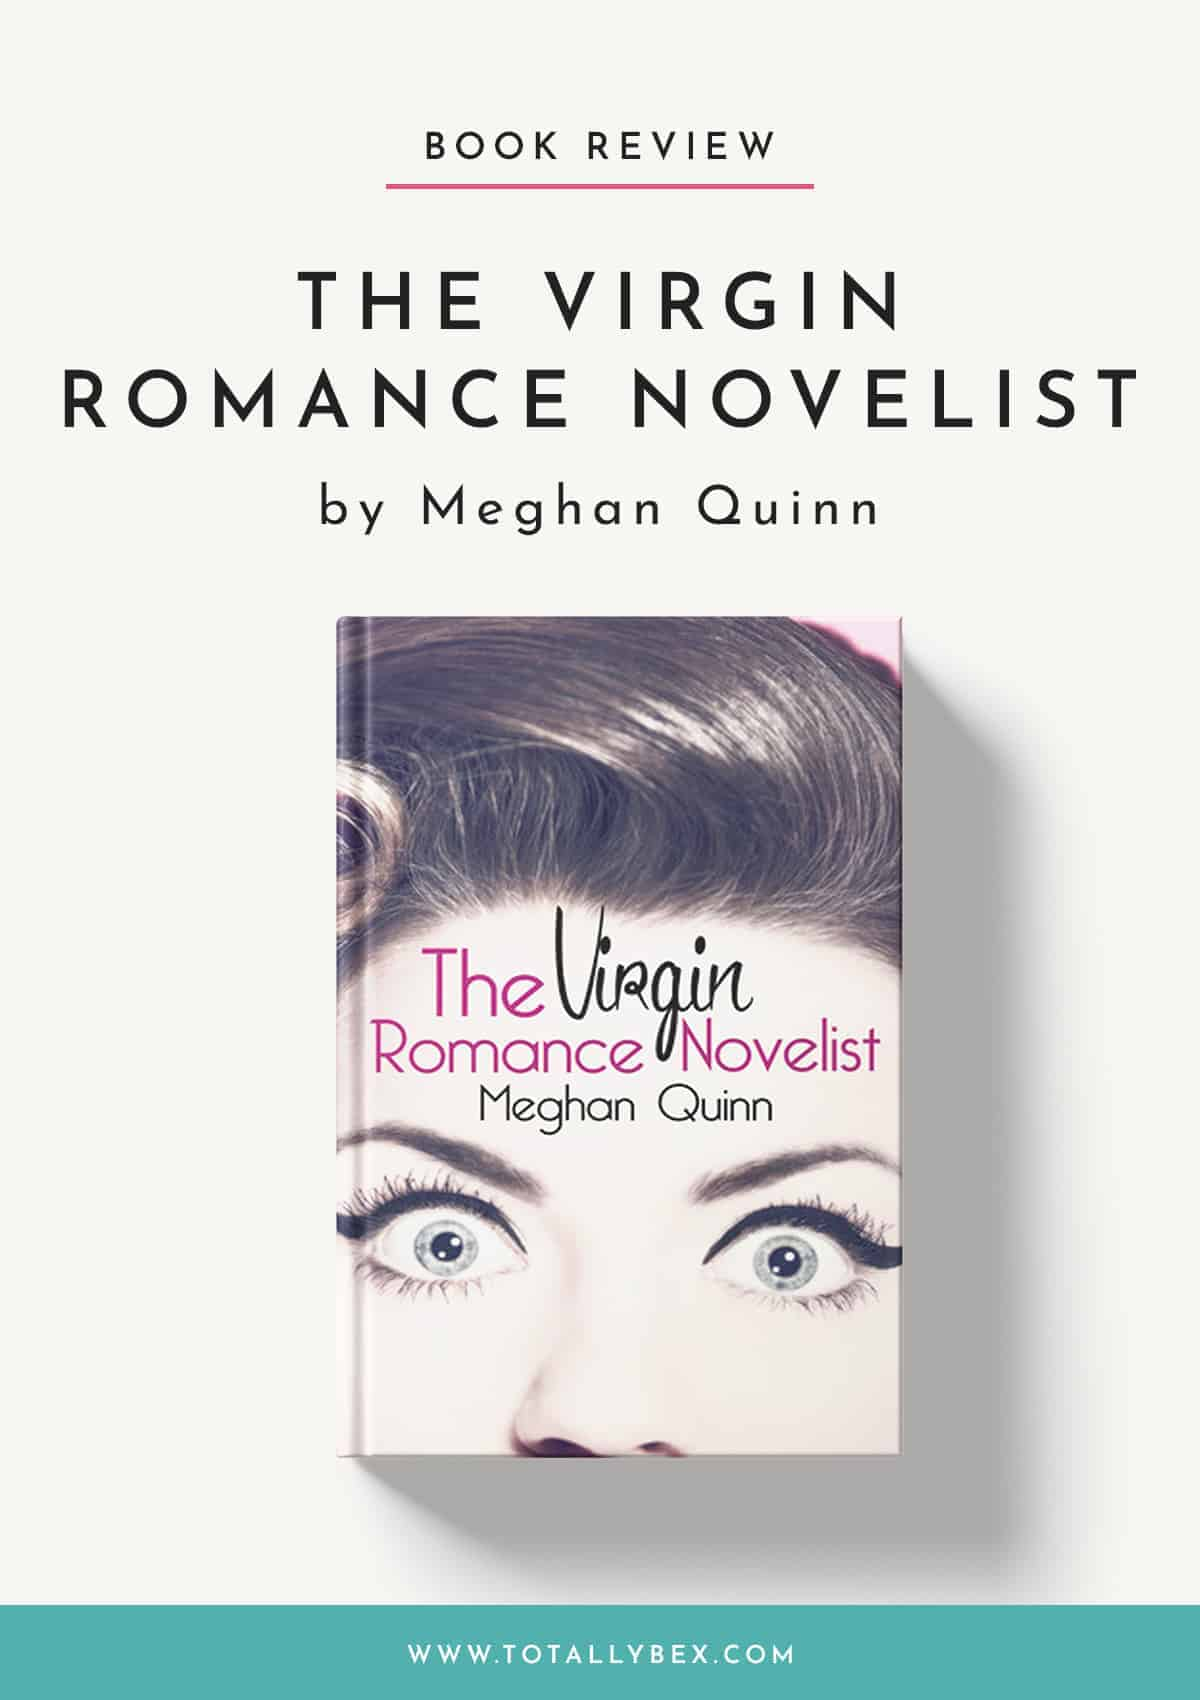 The Virgin Romance Novelist by Meghan Quinn-Book Review